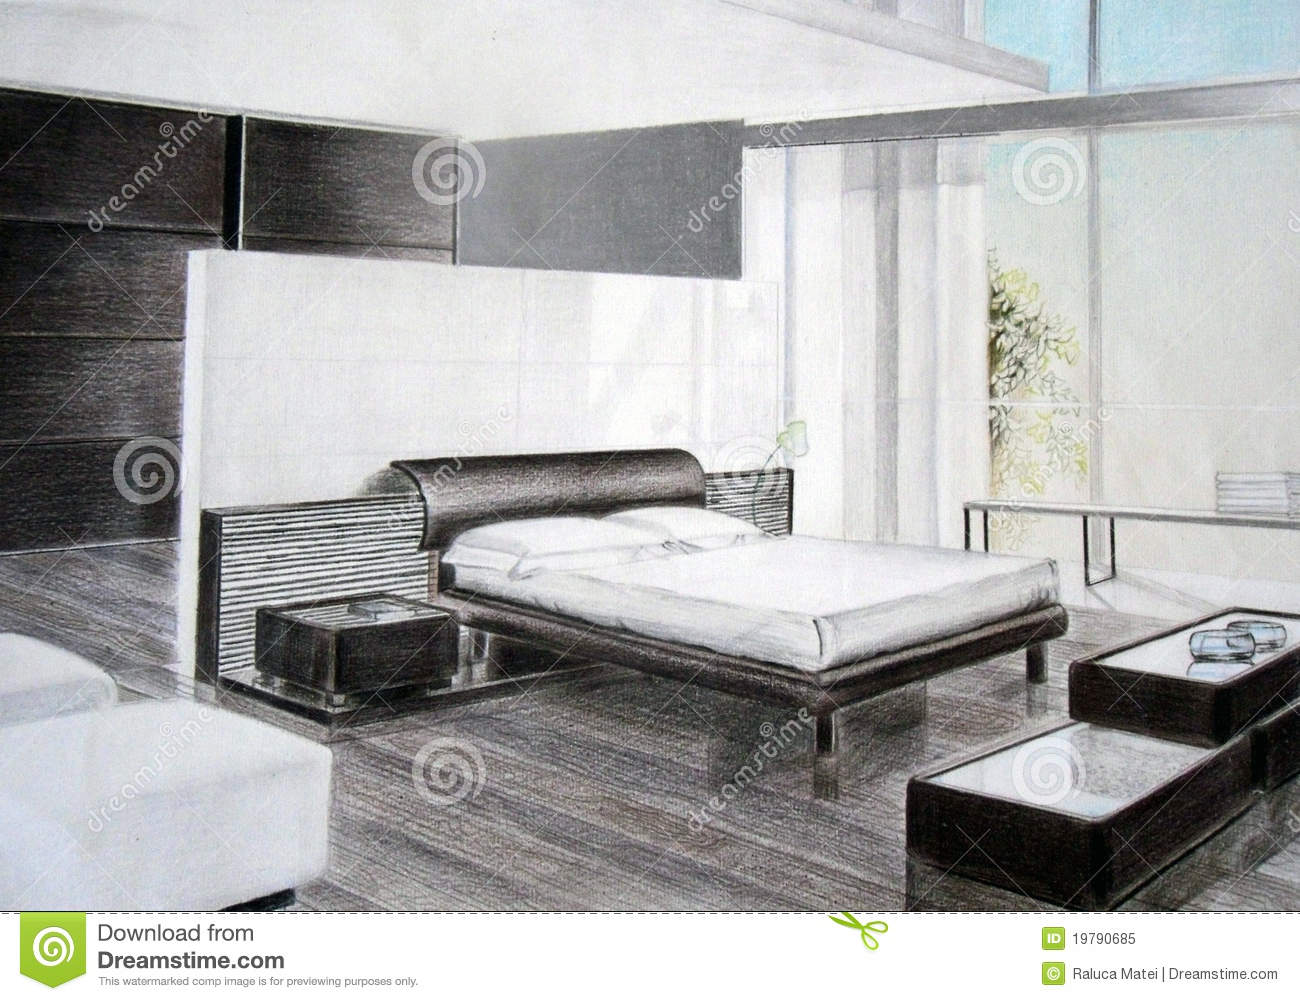 croquis de chambre coucher photo libre de droits image 19790685. Black Bedroom Furniture Sets. Home Design Ideas